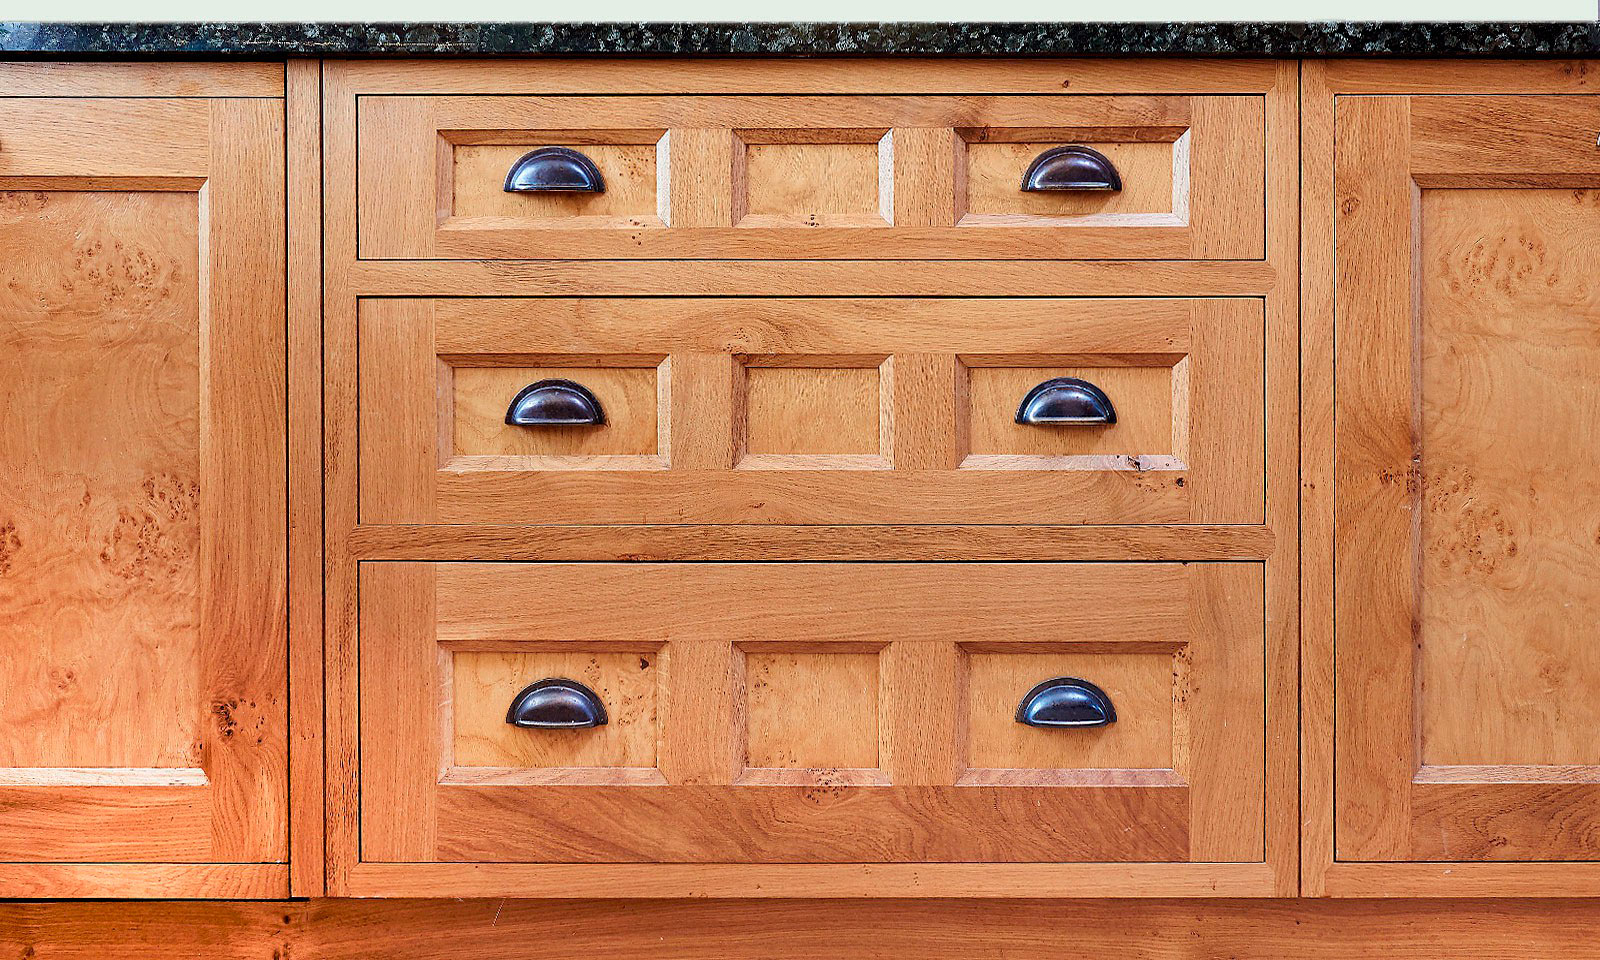 Pantiles. A classic handmade, hand-painted, Shaker kitchen, installed in a grade II listed building. Built using solid European oak and finished in cluster oak veneer with granite worktops. Another hand-crafted kitchen manufactured by the skilled cabinet makers at Mounts Hill.